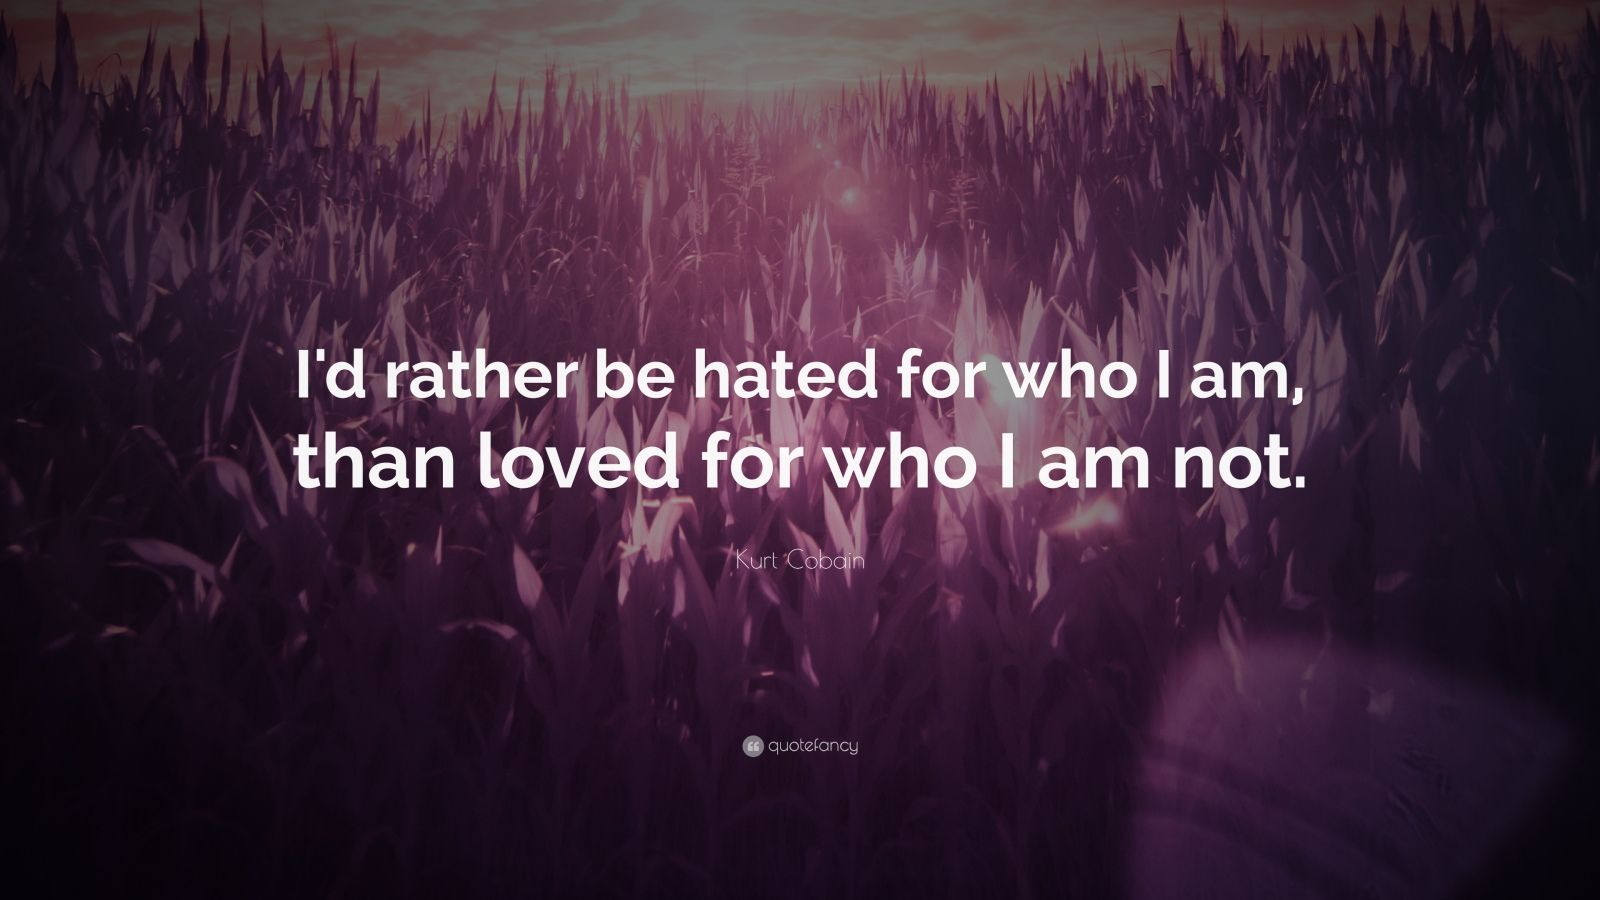 """Kurt Cobain Quote: """"I'd rather be hated for who I am, than loved for who I am not."""""""